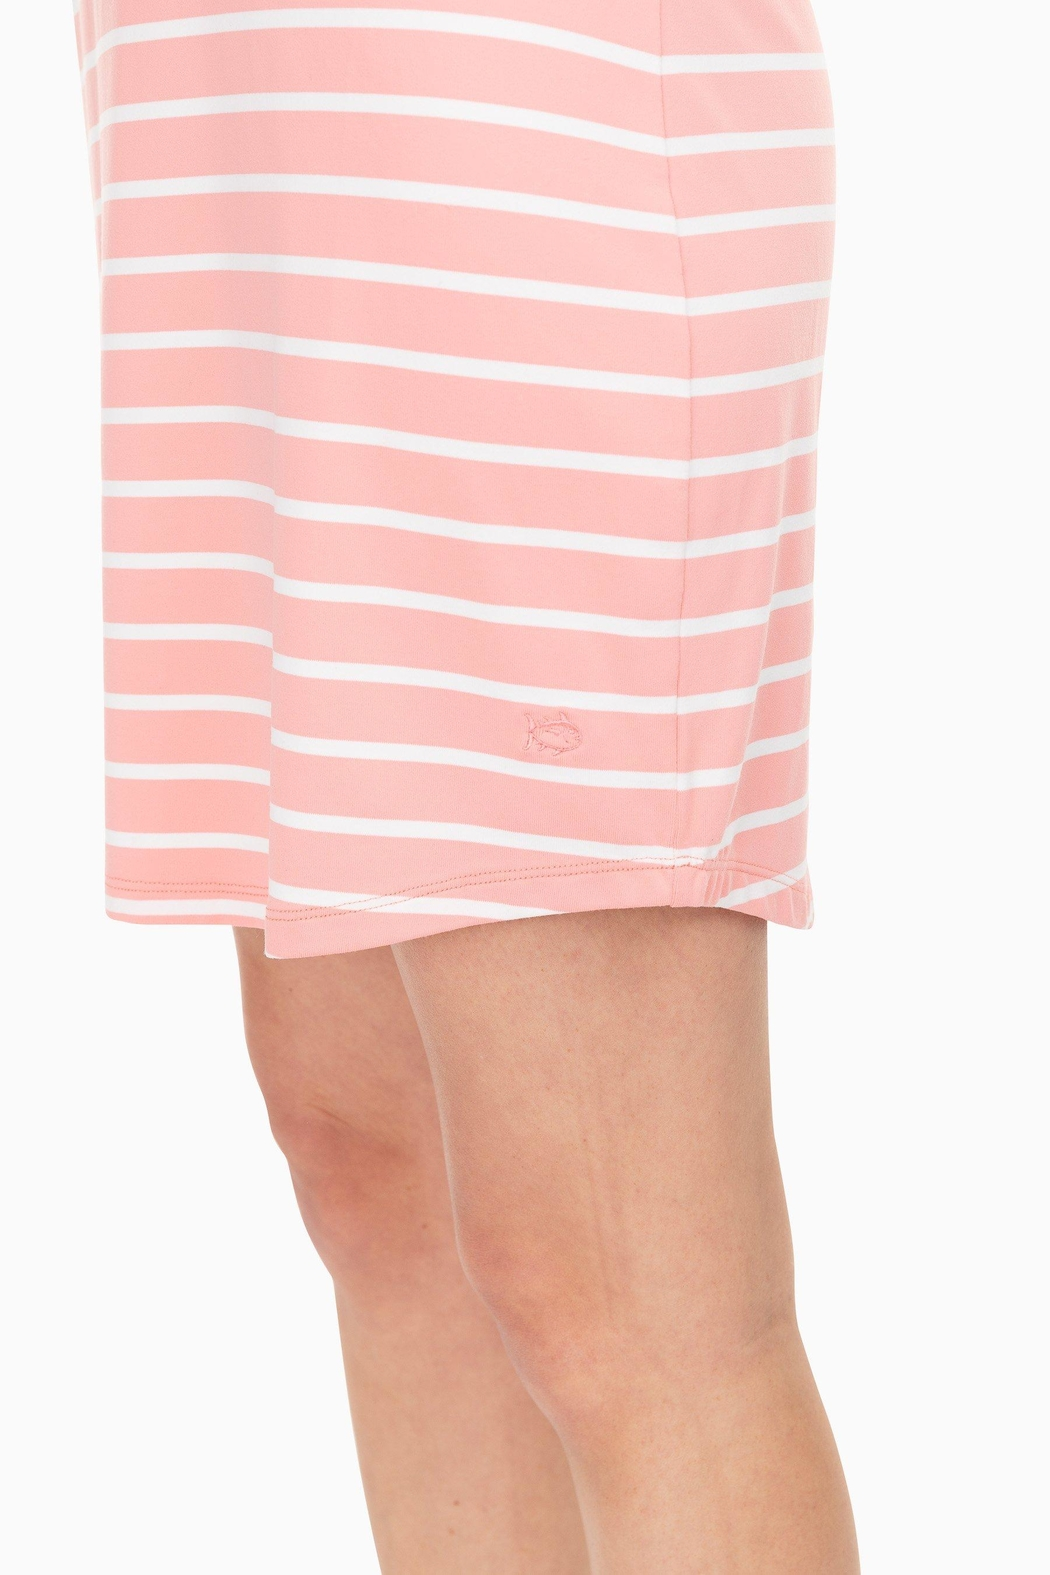 Southern Tide Reagan Performance Dress - Back Cropped Image